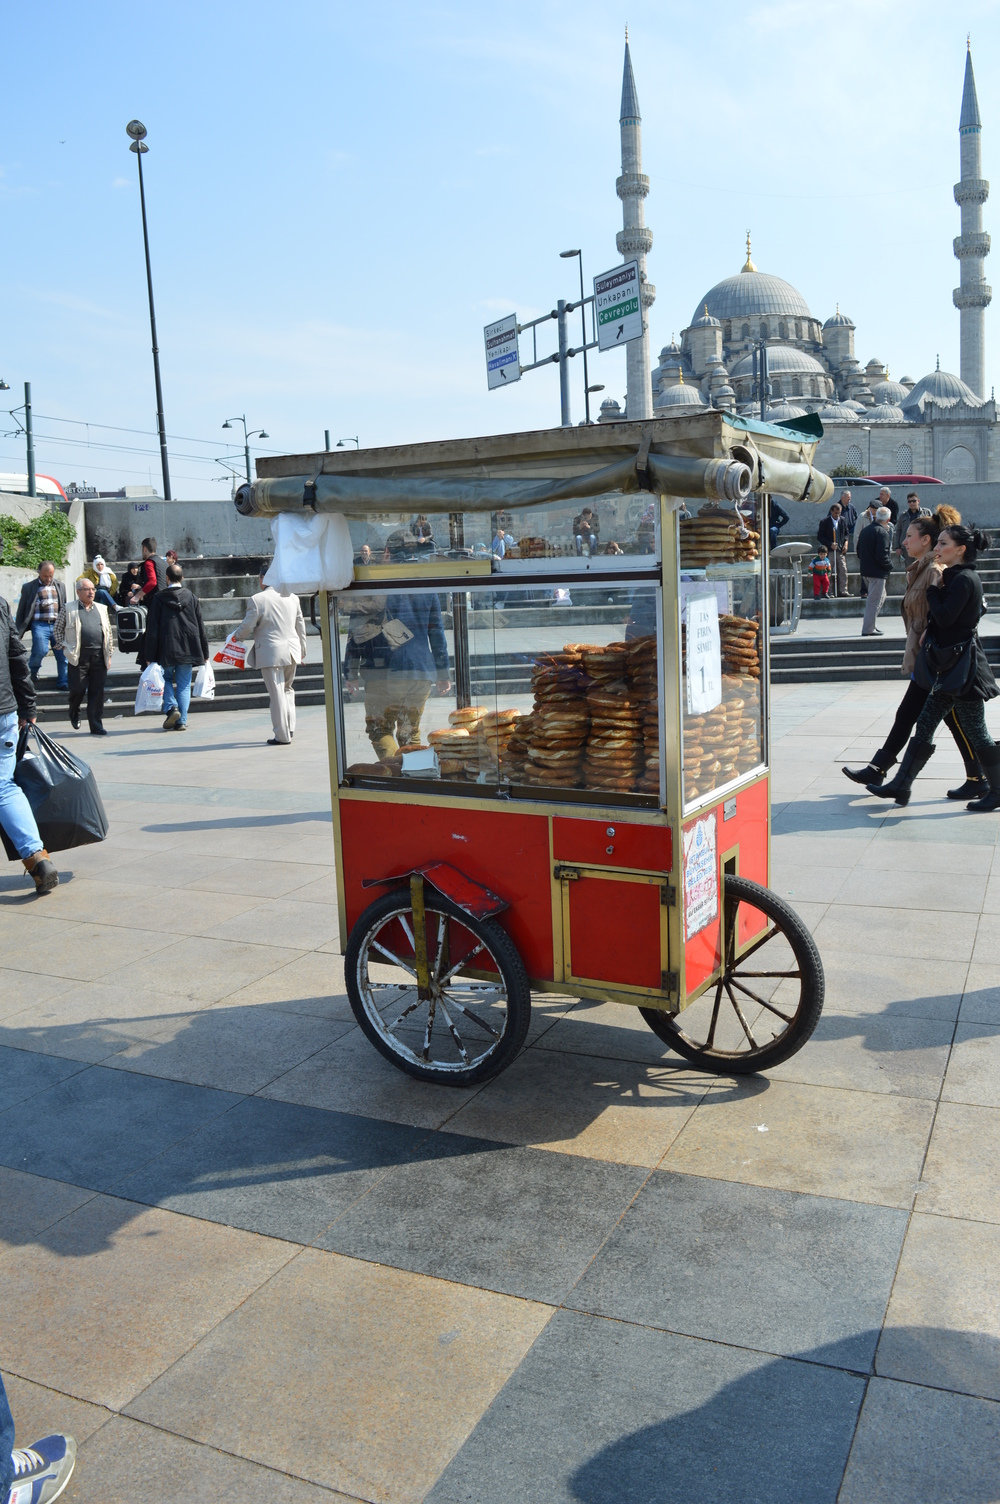 This is a little simit cart near the docks.  There's a touch of Wes Anderson about them, don't you think?